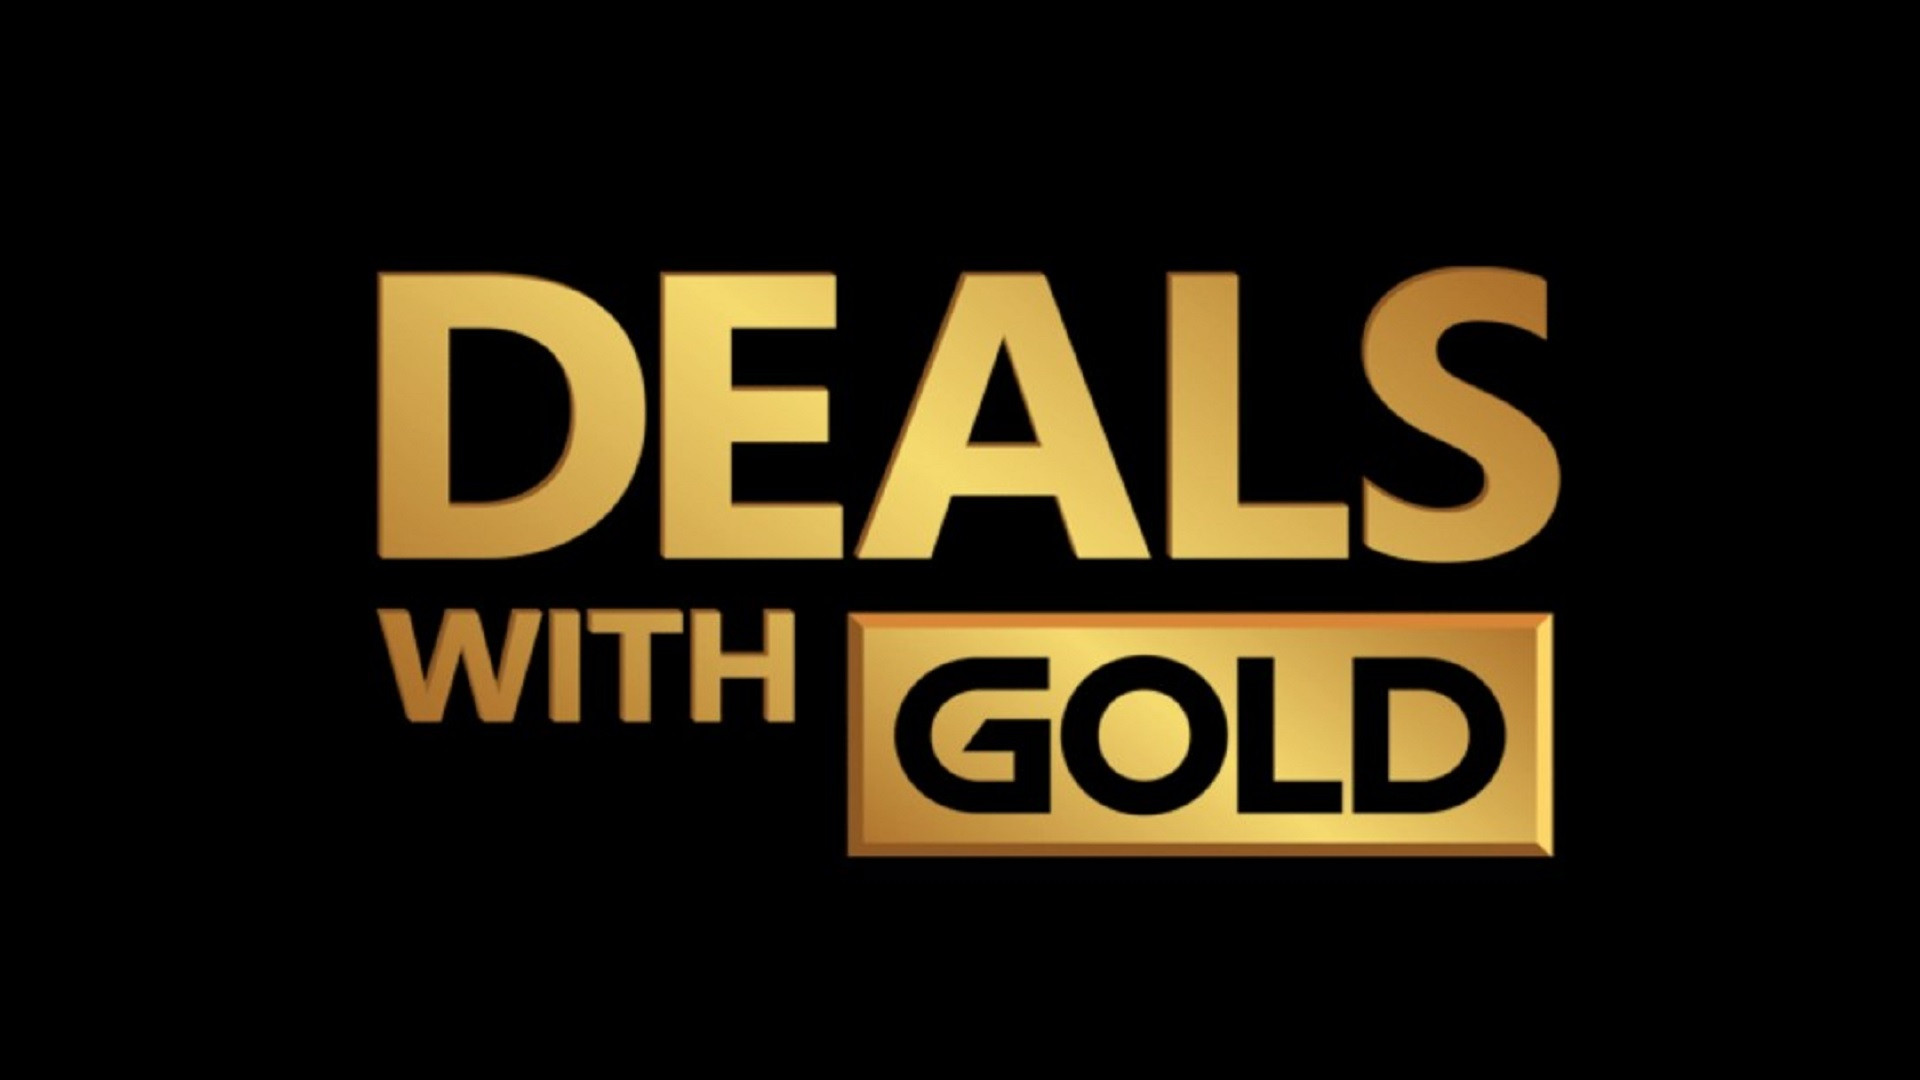 Deals with Gold semaine 12